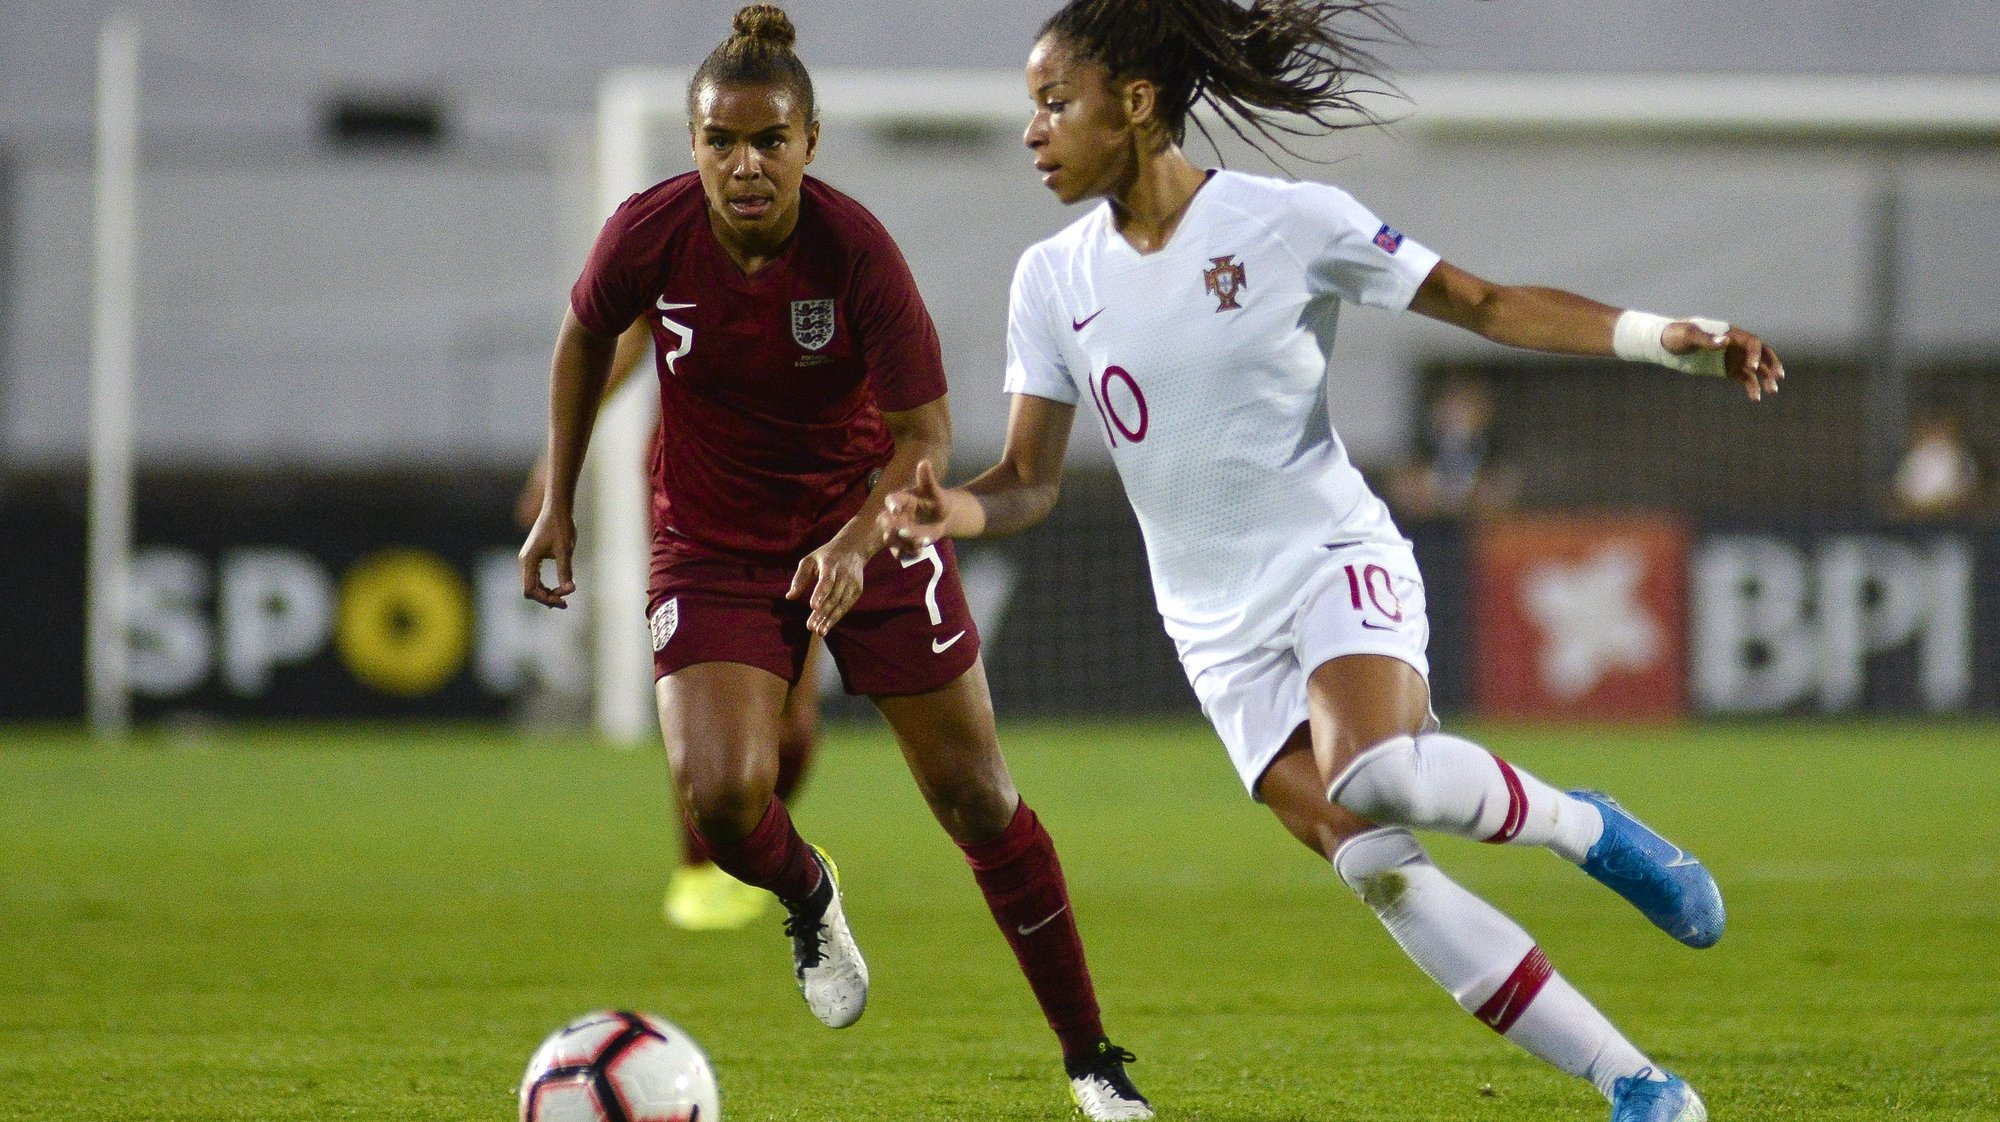 Portugal`s Jessica Silva (R) fights for the ball with Nikita Parris of England during their friendly women soccer match held at Bonfim Stadium, Setubal, Portugal, 8th October 2019. RUI MINDERICO/LUSA